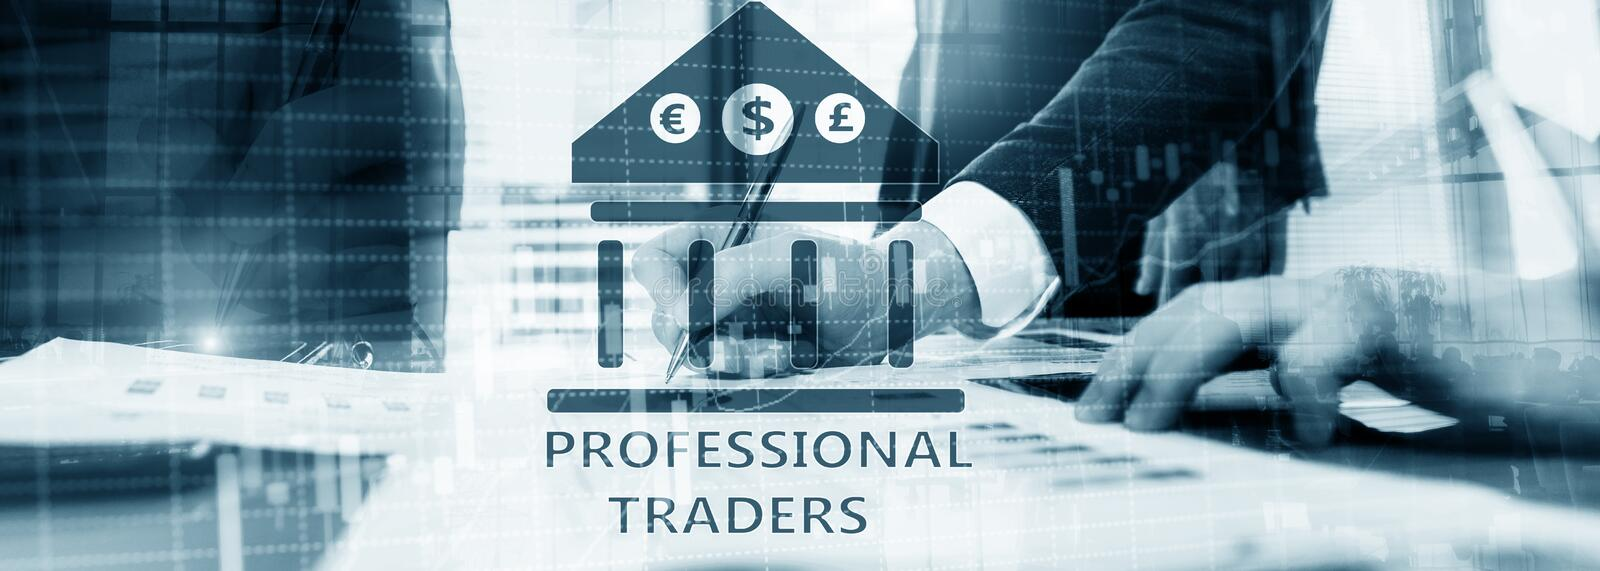 Double exposure of professional trader. Stock candles graph of stocks market.  royalty free stock image